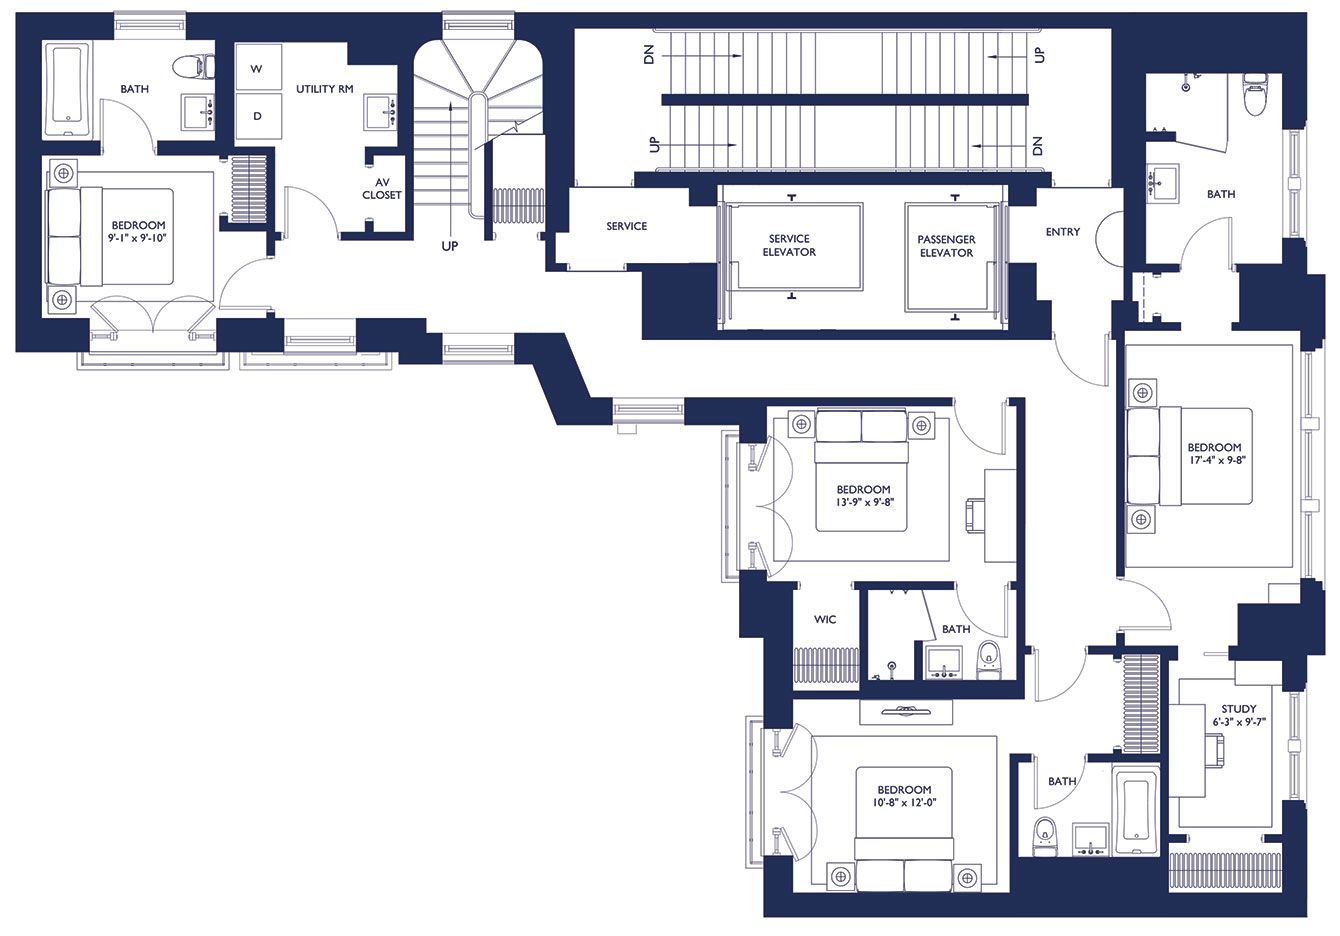 1110 park ave floor plan penthouse n y c p a r 3 1110 park ave floor plan penthouse